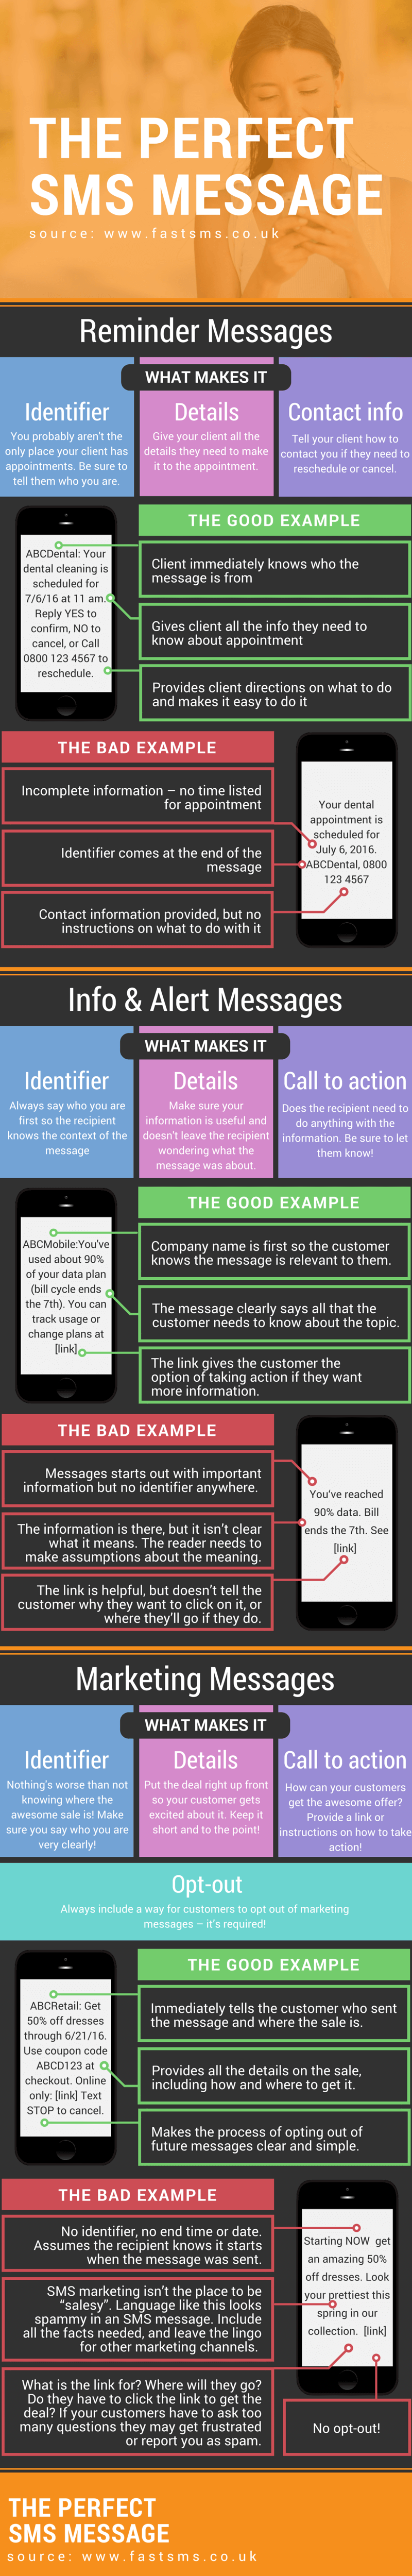 [Infographic] The Perfect SMS message